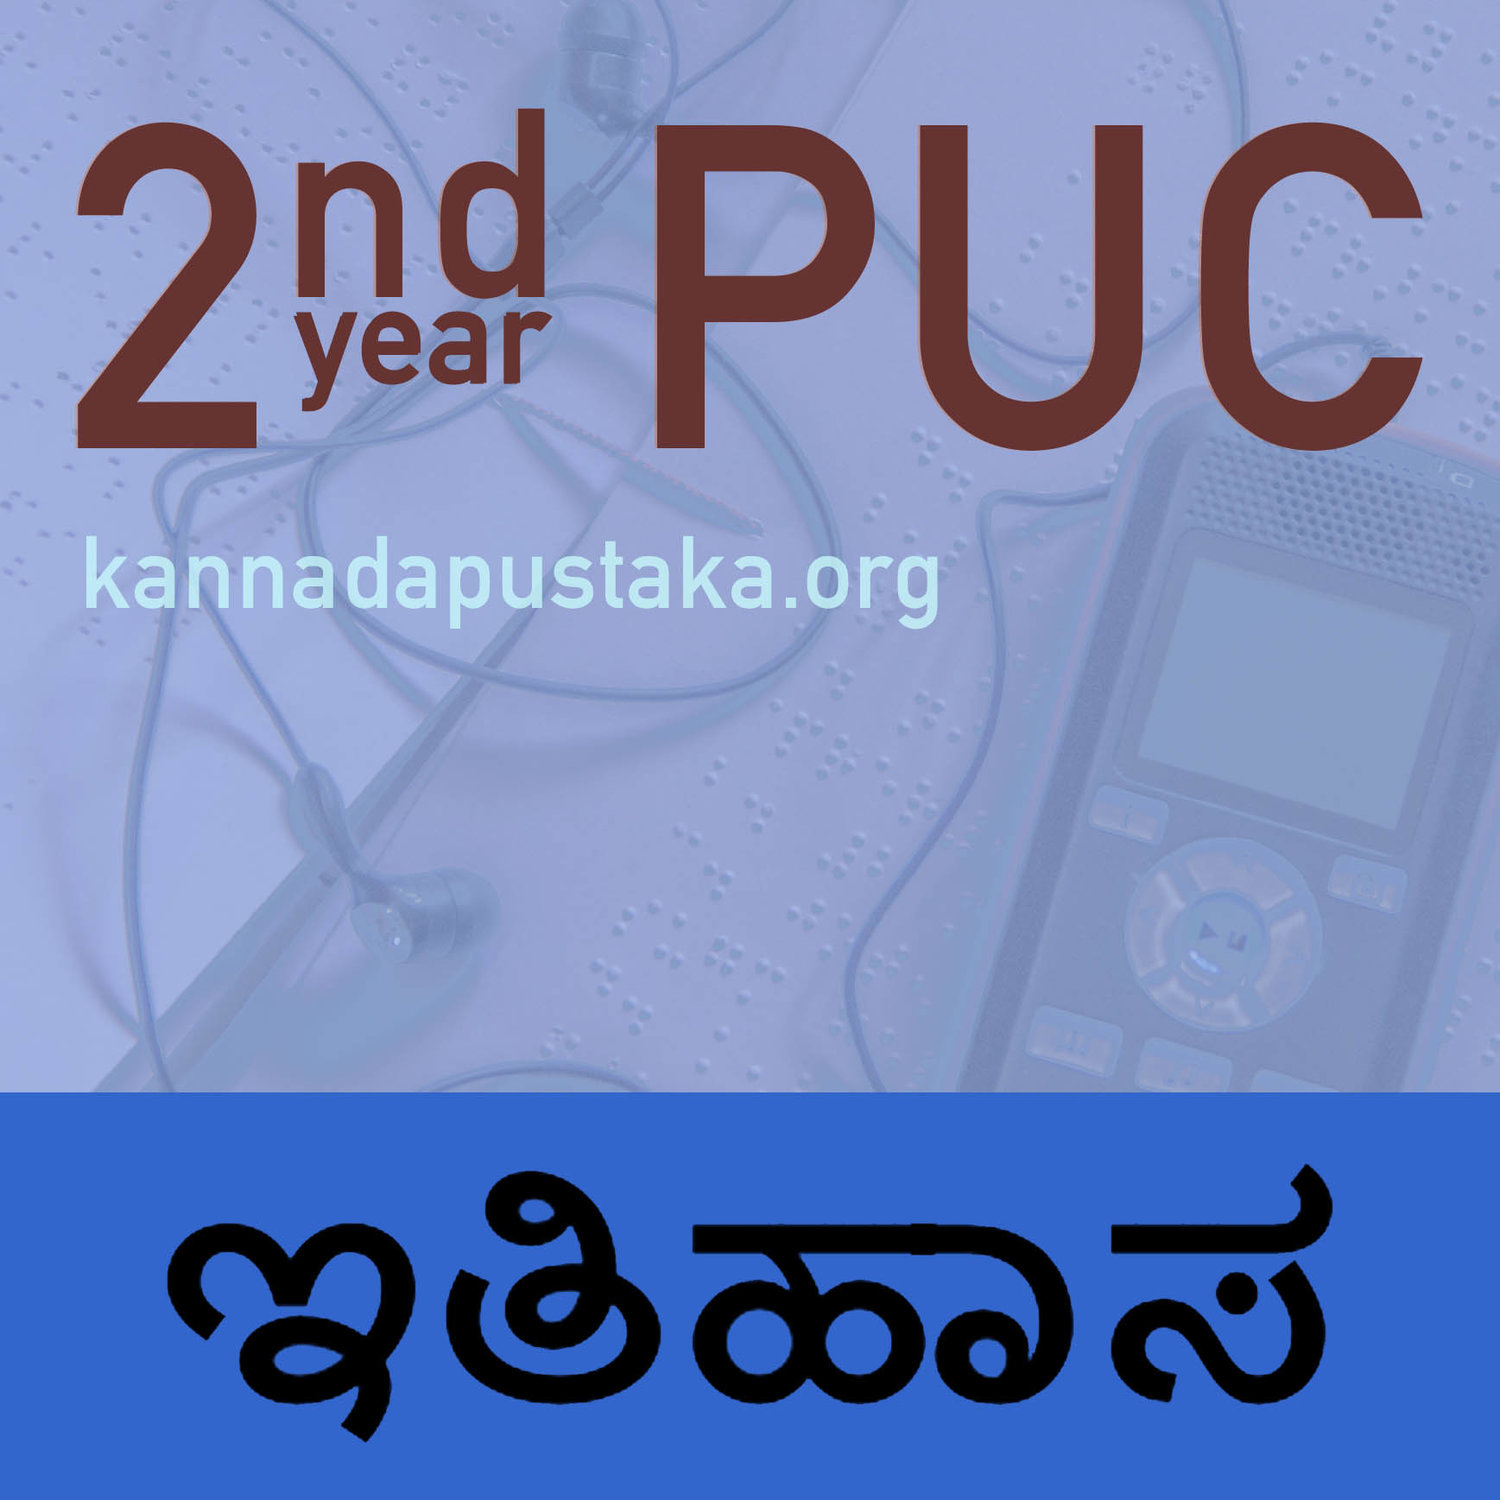 2nd PUC History - Chapter 01: ಪೀಠಿಕೆ — Kannada Pustaka